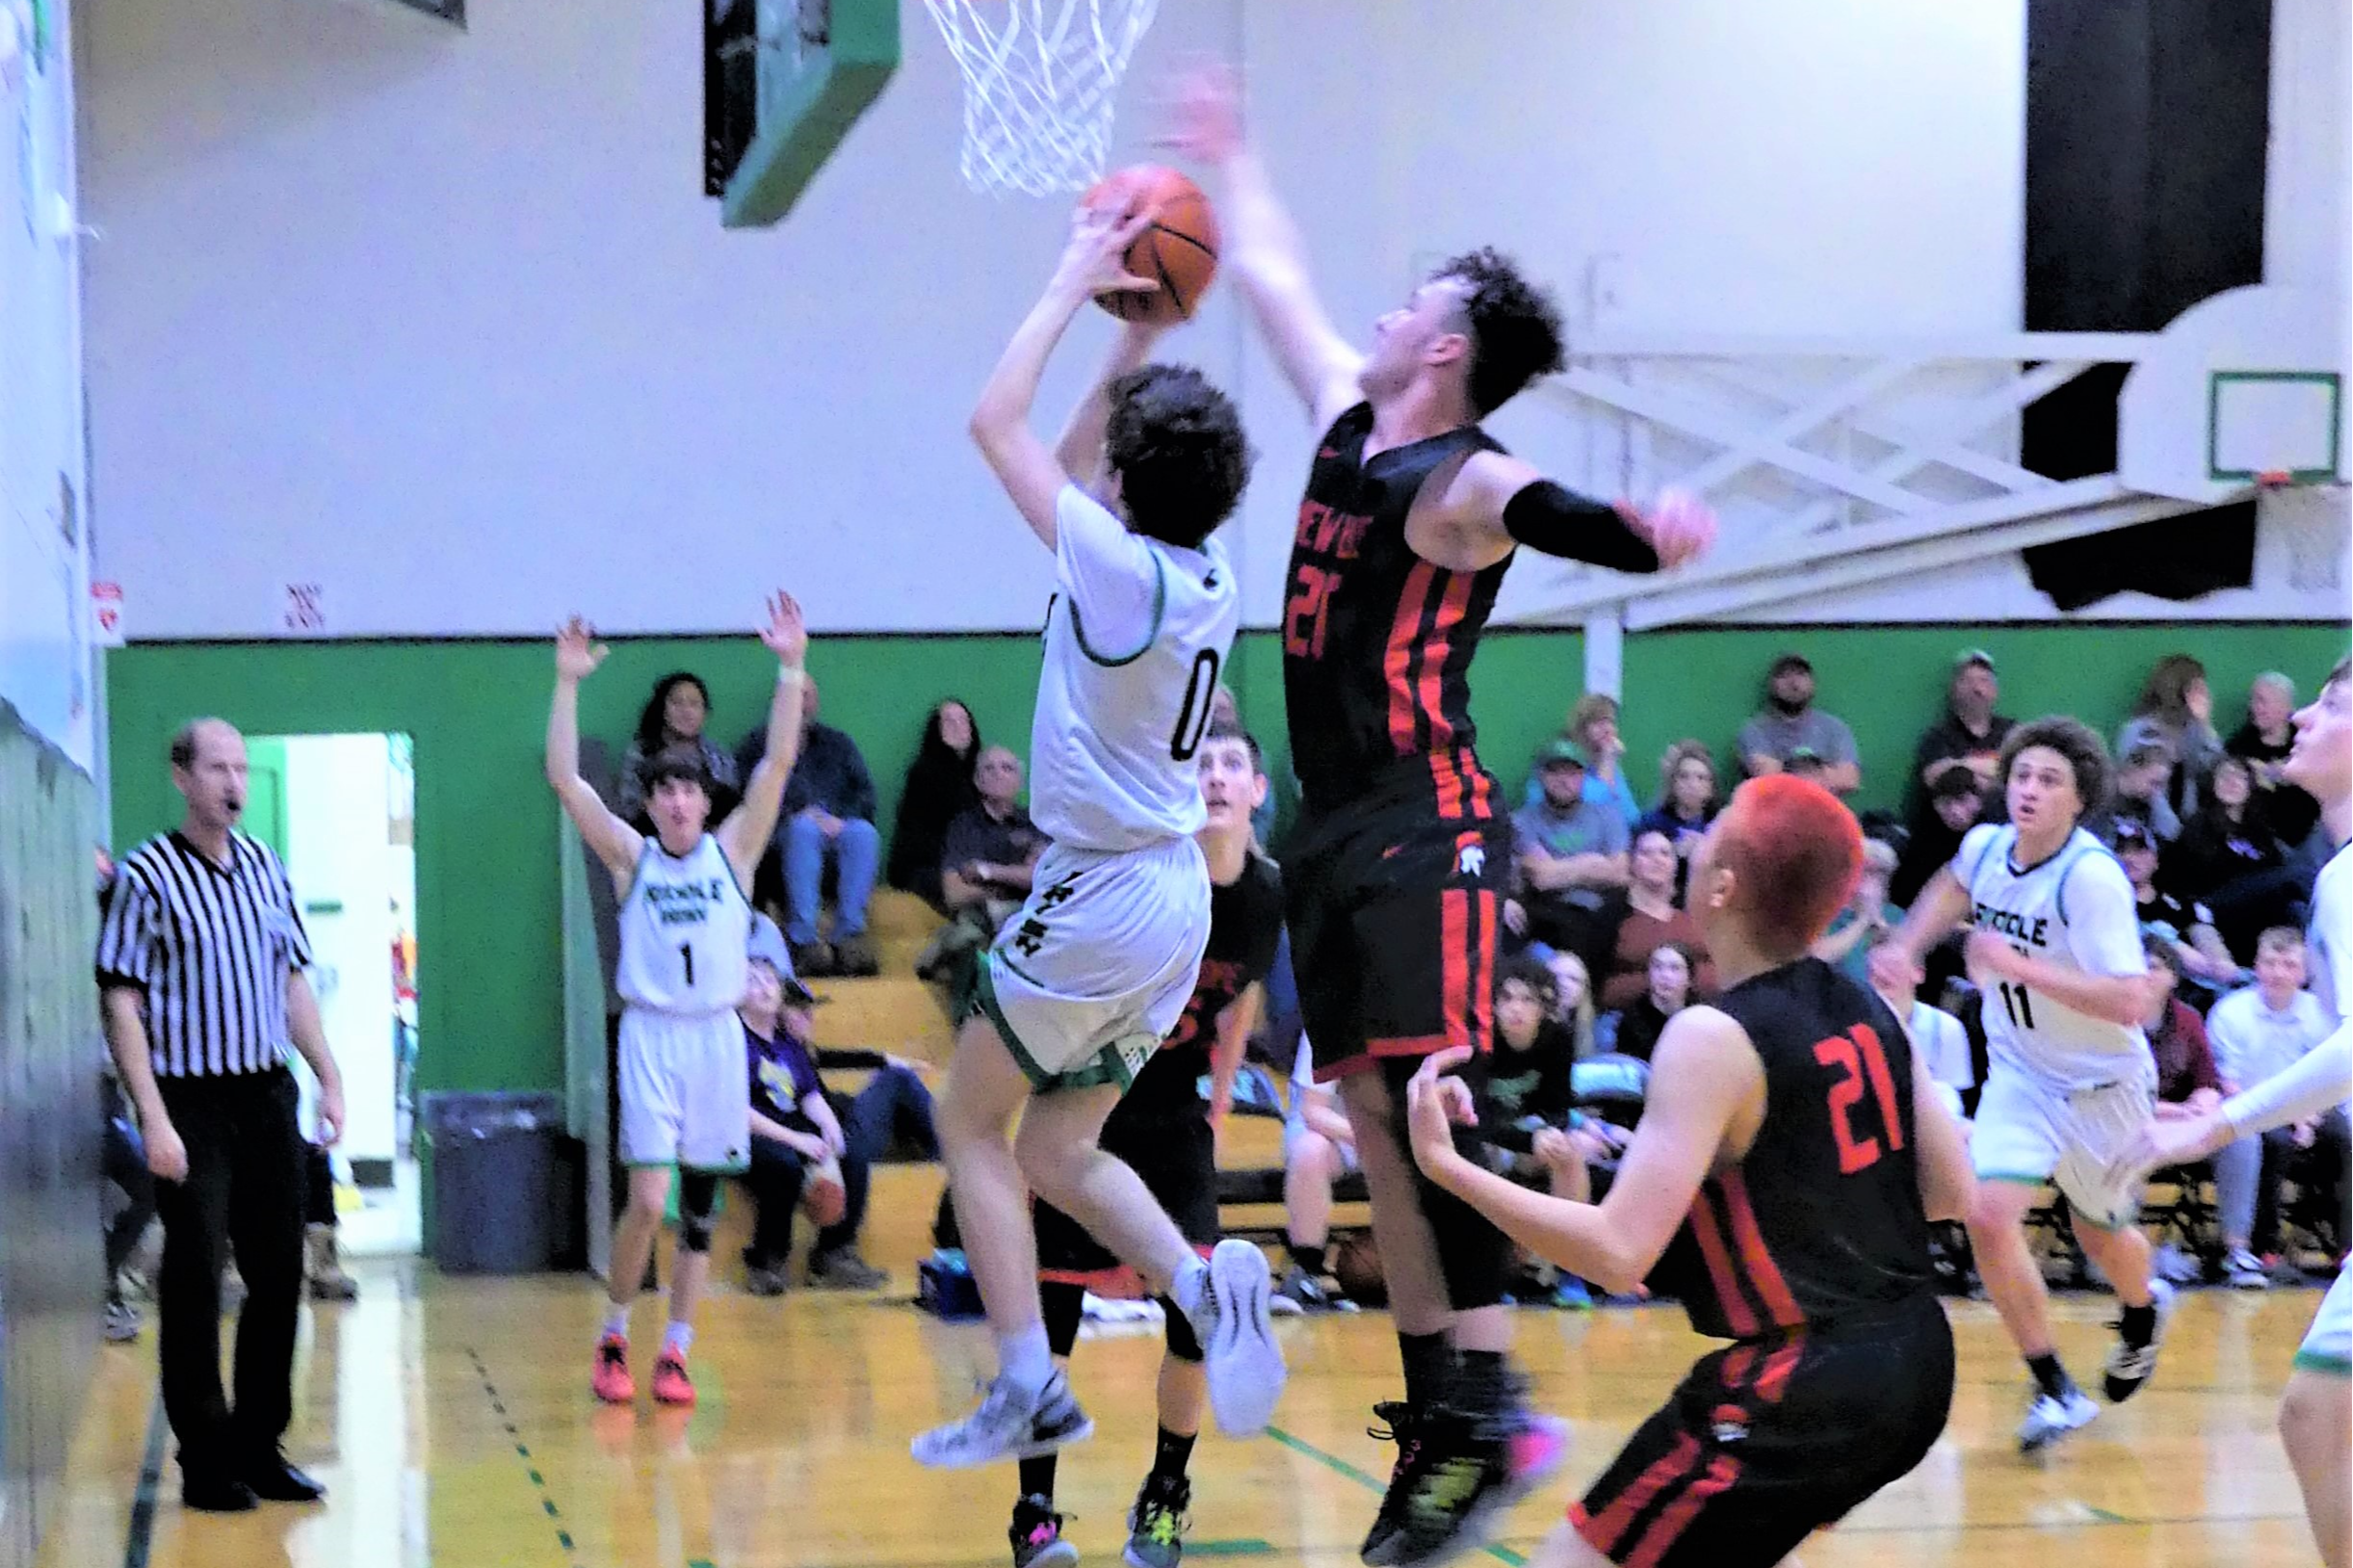 Riddle basketball player going up for a basket.